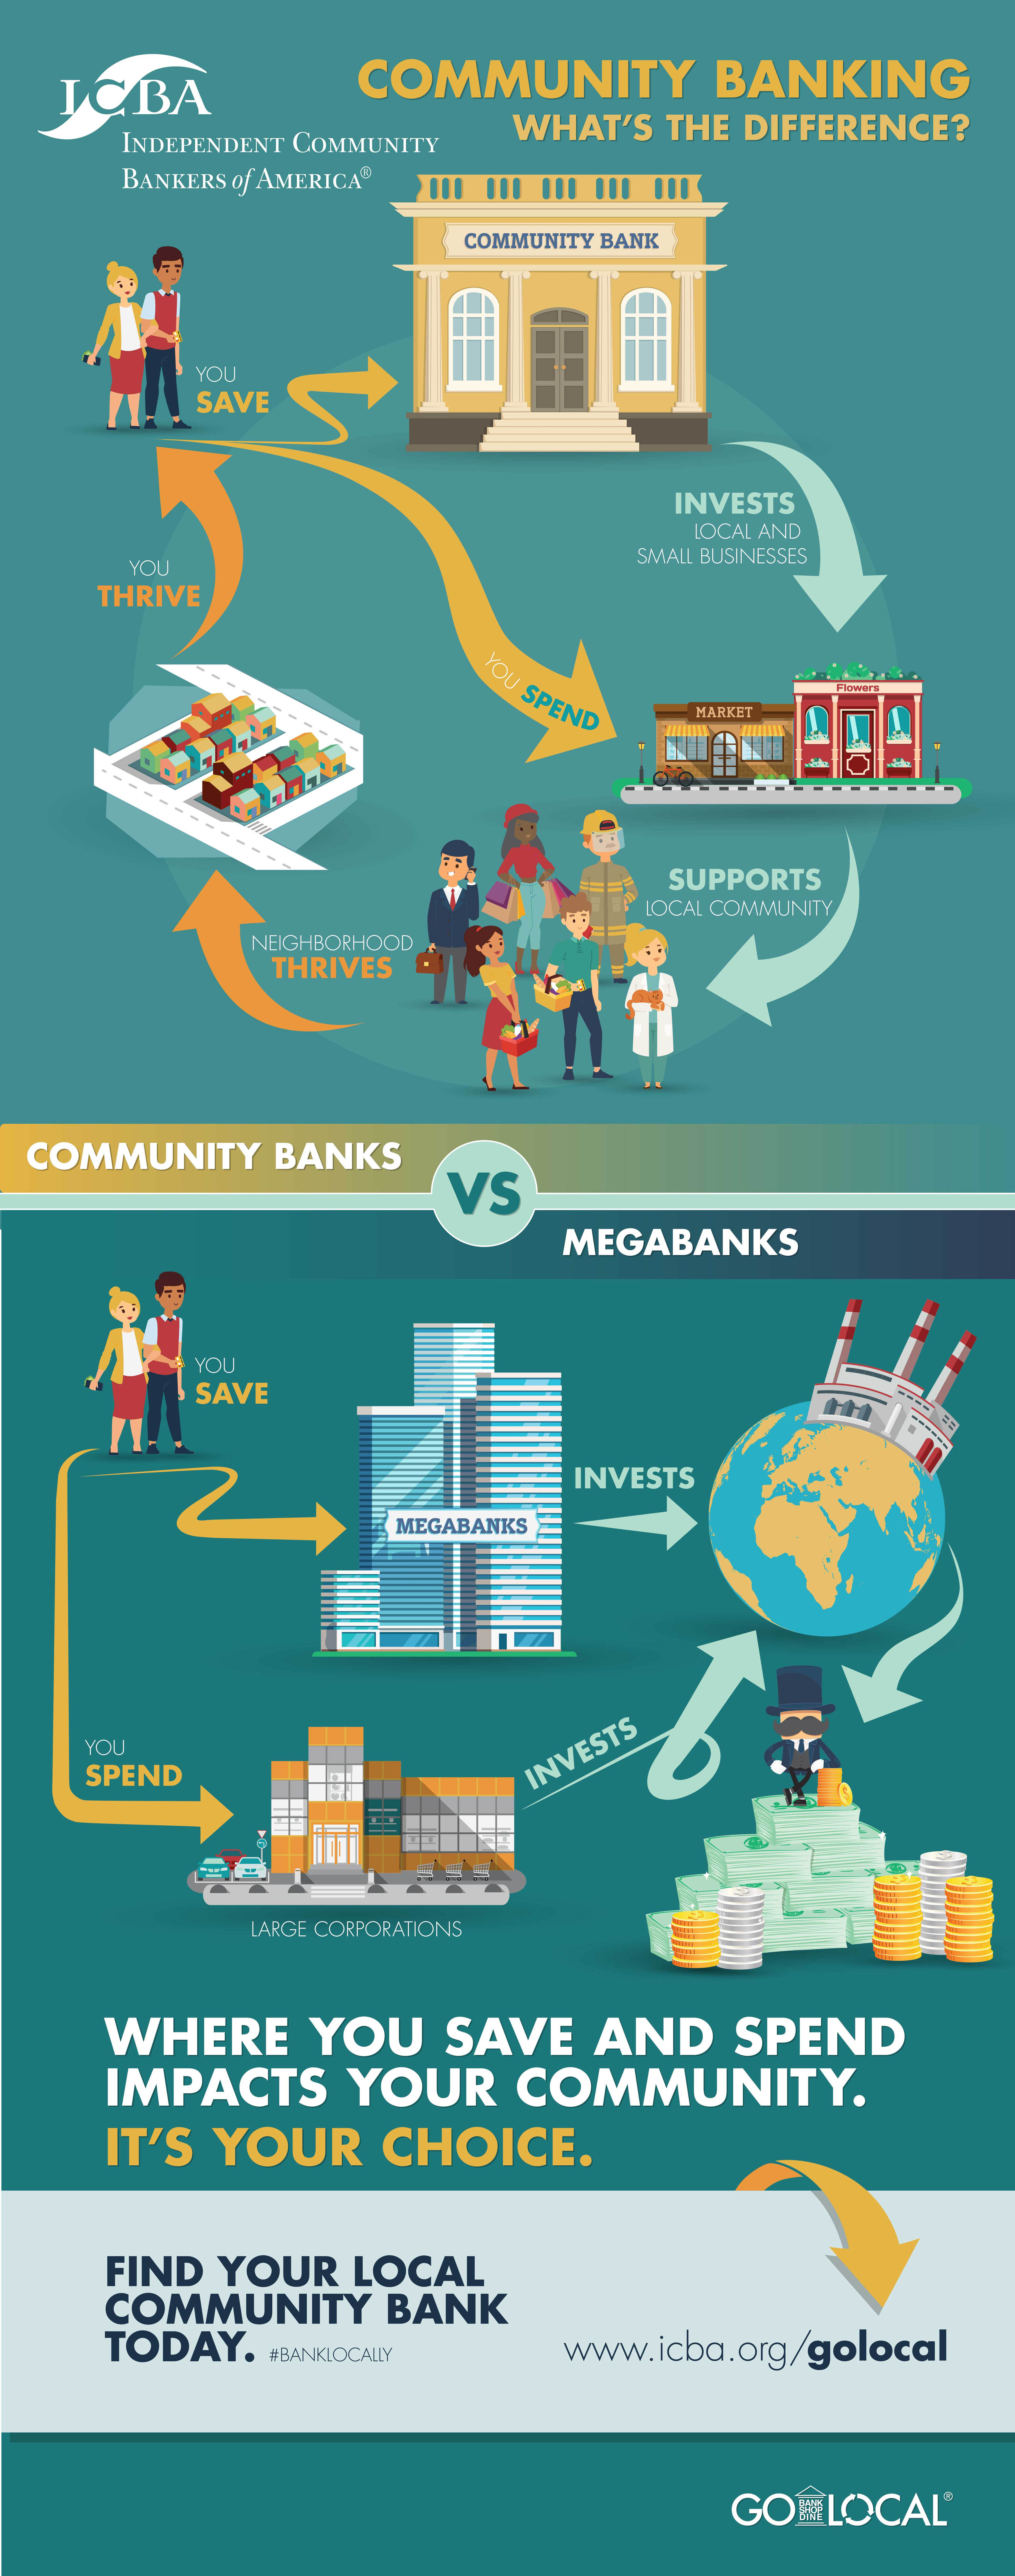 Community Banking: What's the Difference